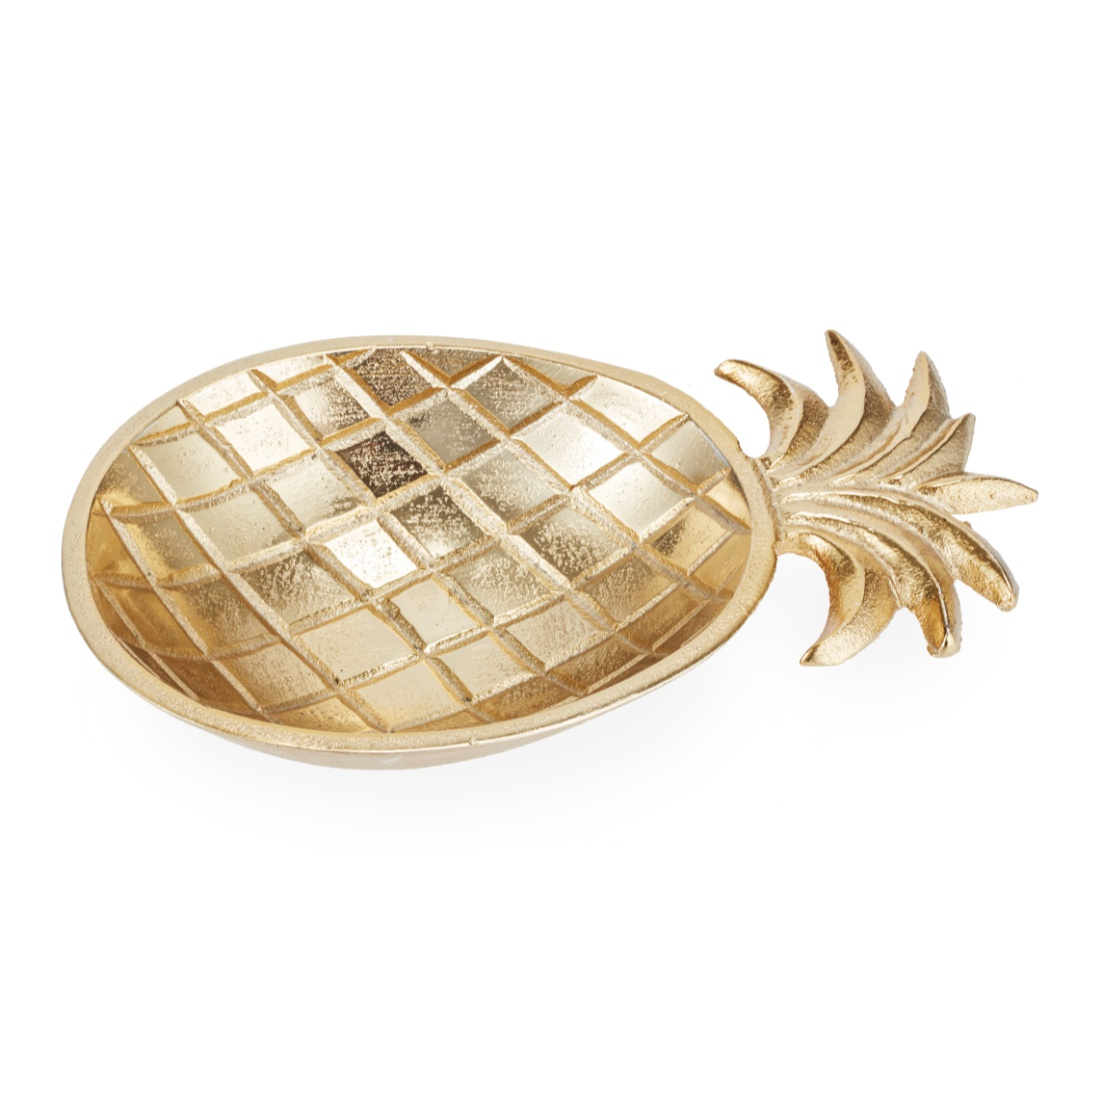 Aspen Pineapple Plater Small Gold Glass Table D in Gold Colour by Living Essence